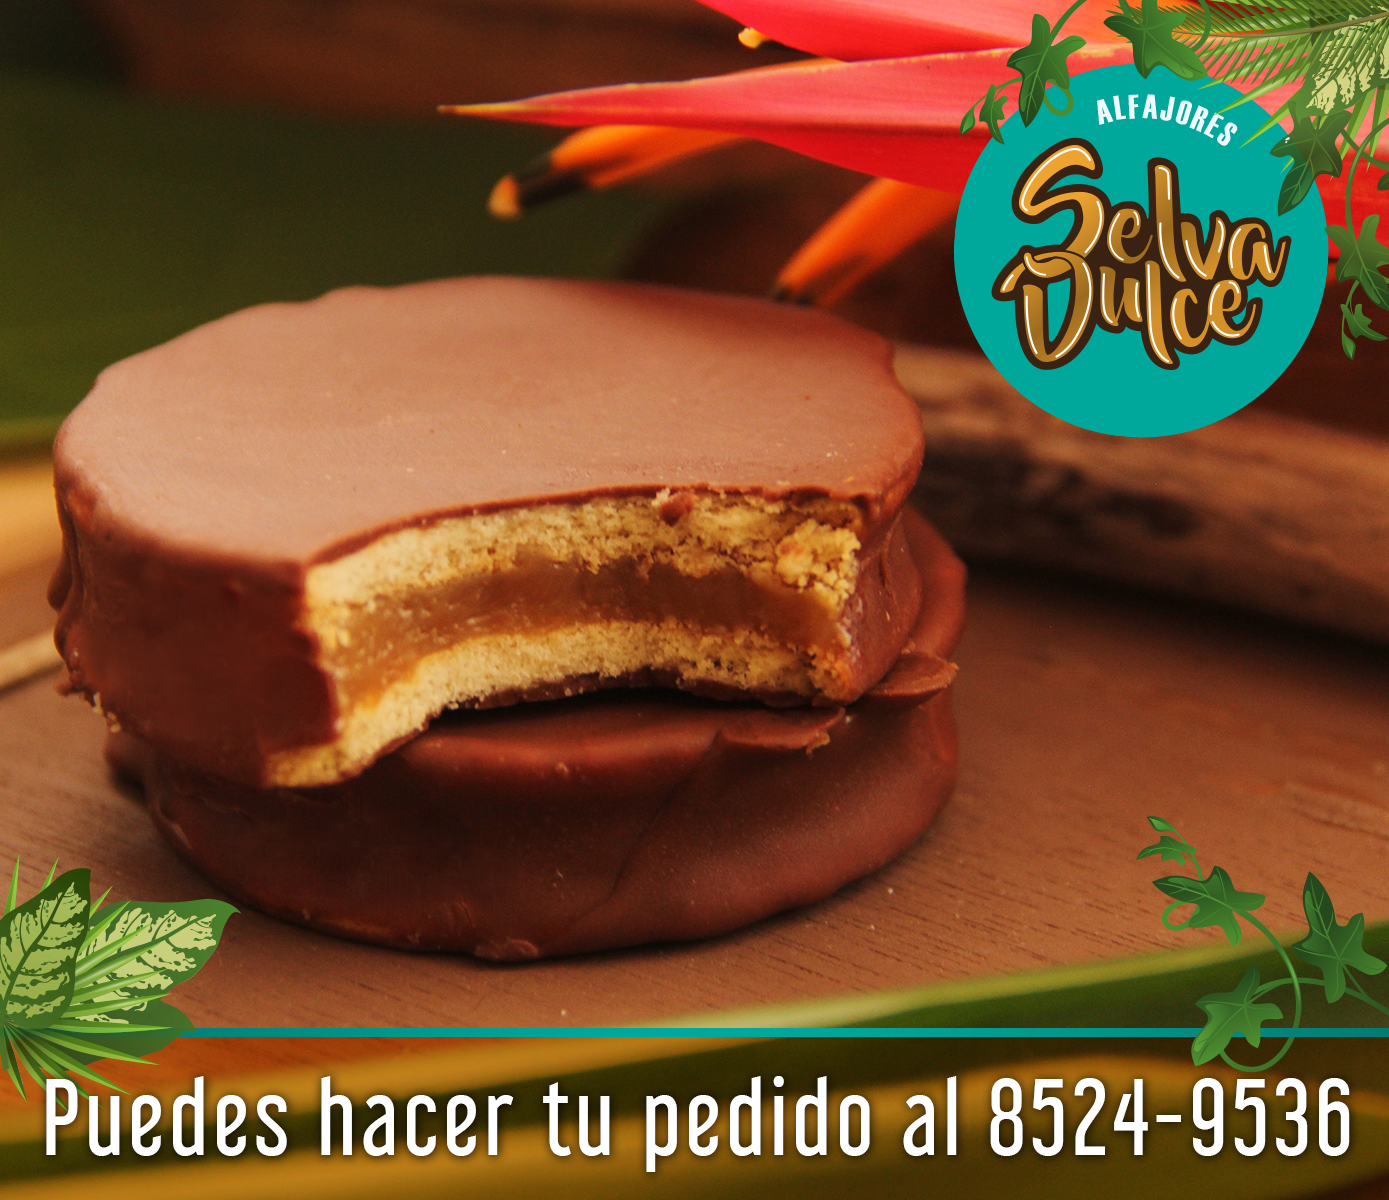 galleta de alfajor